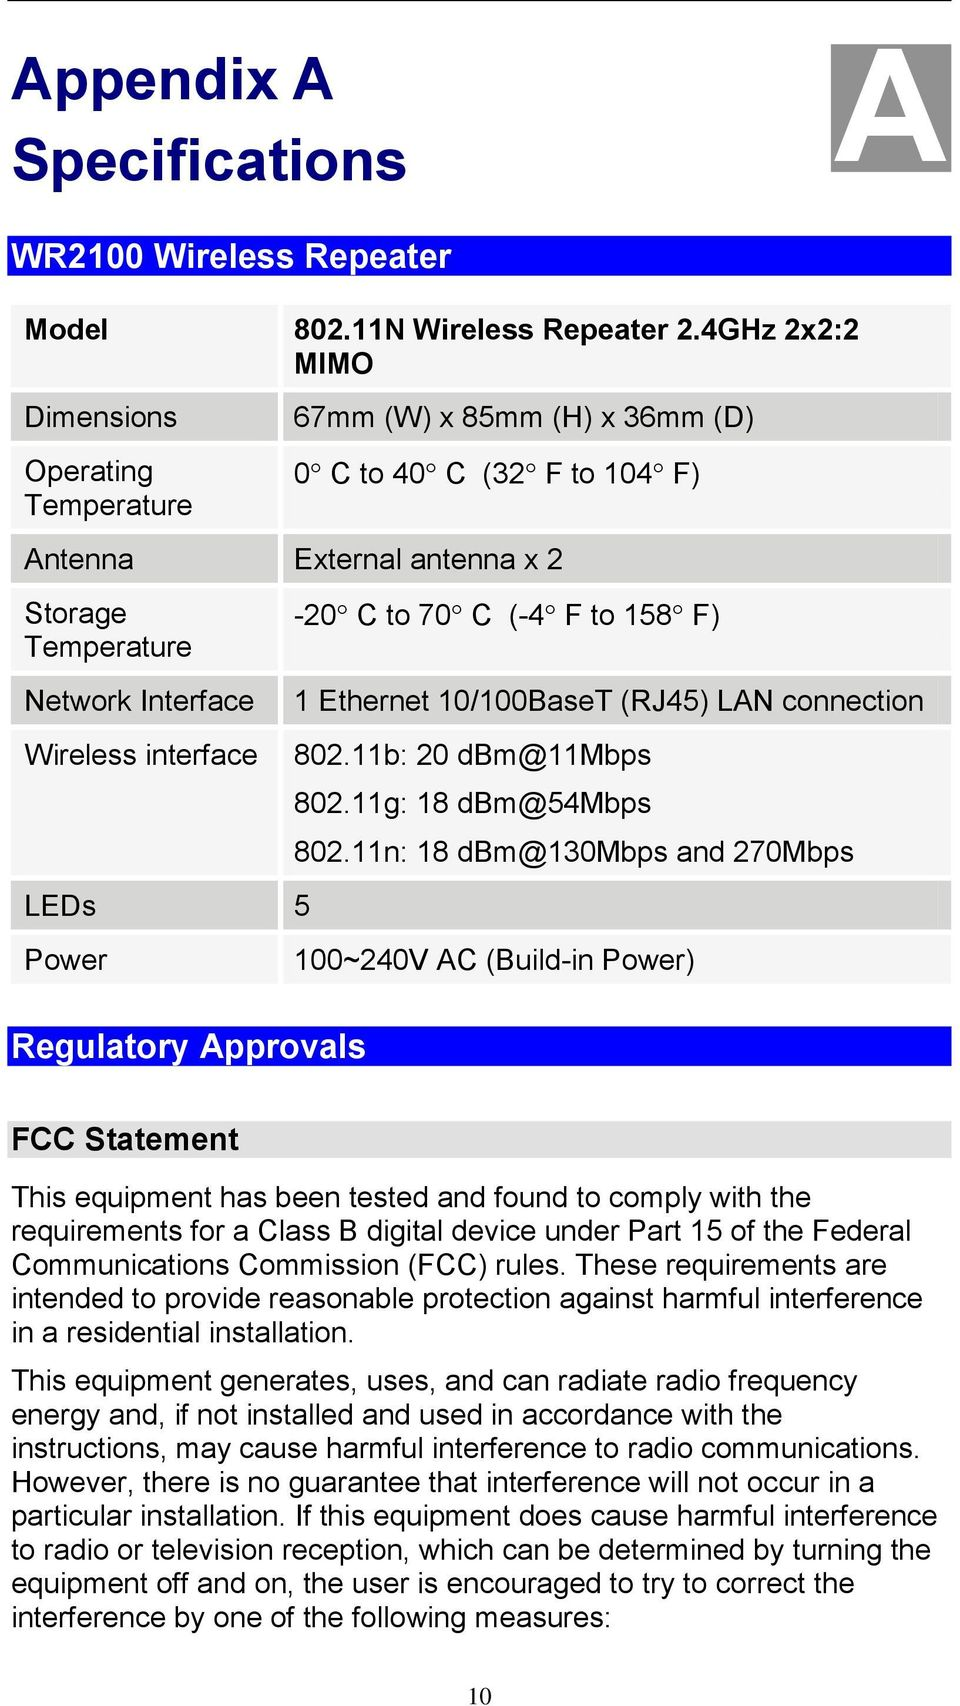 5 Power Regulatory Approvals -20 C to 70 C (-4 F to 158 F) 1 Ethernet 10/100BaseT (RJ45) LAN connection 802.11b: 20 dbm@11mbps 802.11g: 18 dbm@54mbps 802.